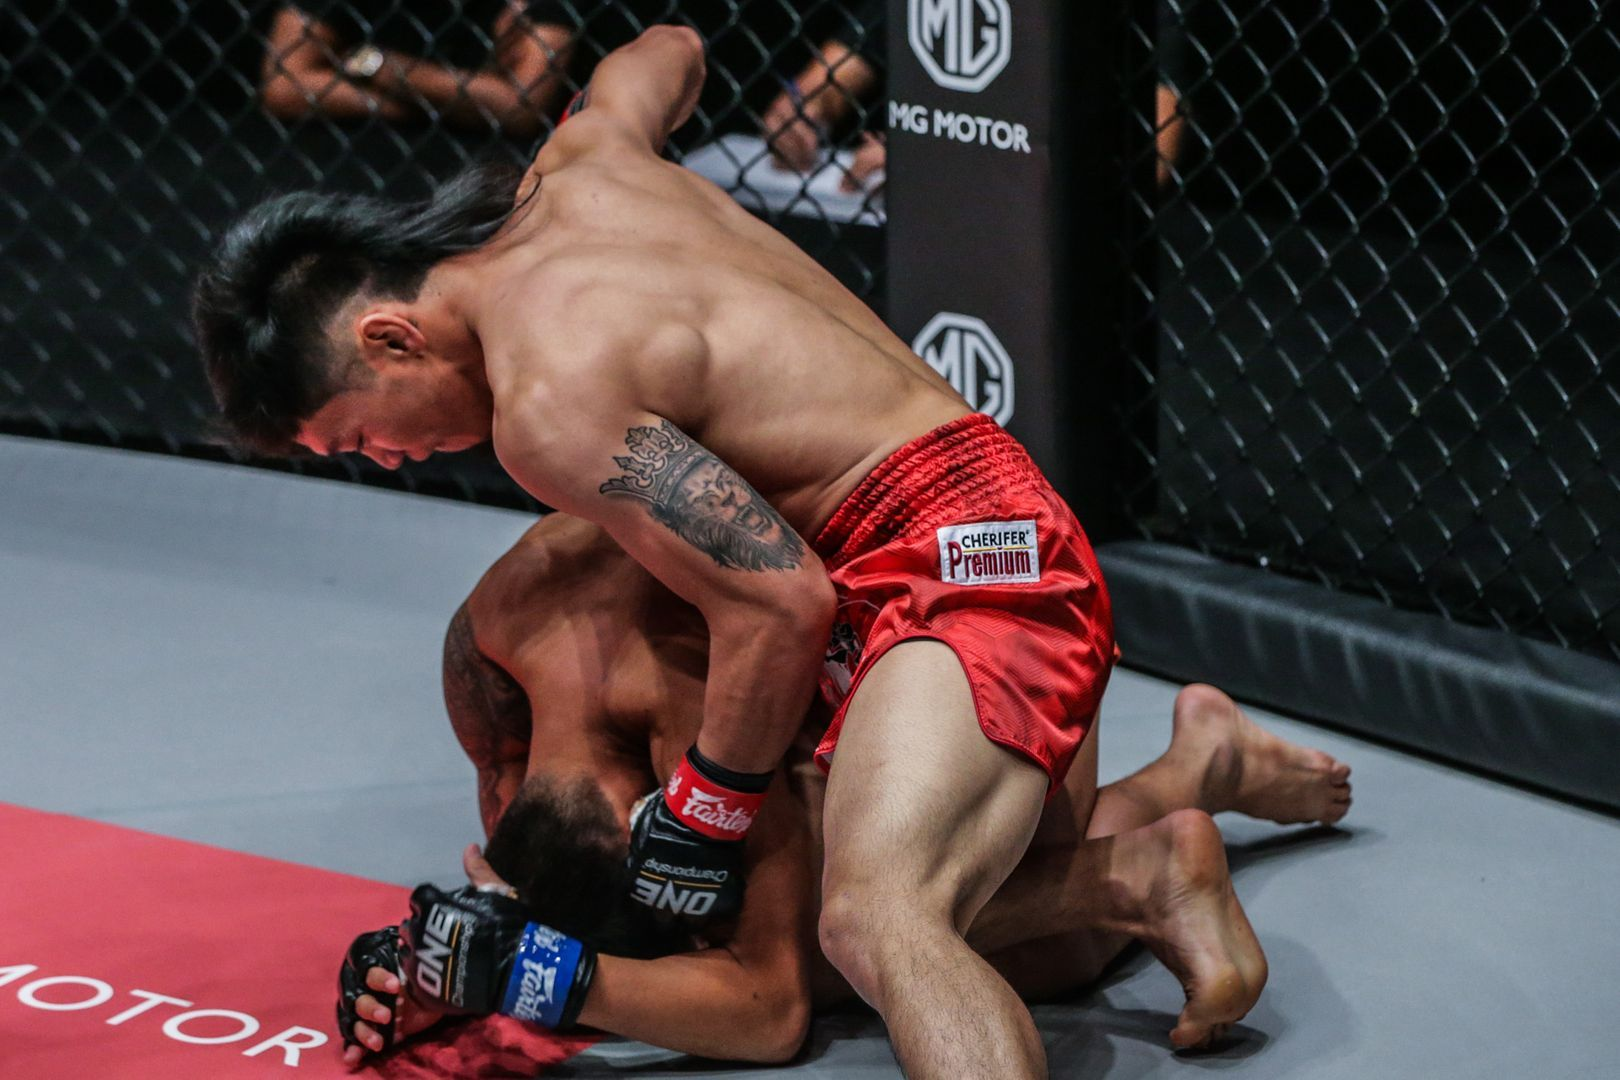 Lito Adiwang On Kawahara Fight: 'I Have To Prove Myself To The World And Earn People's Respect' - Lito Adiwang